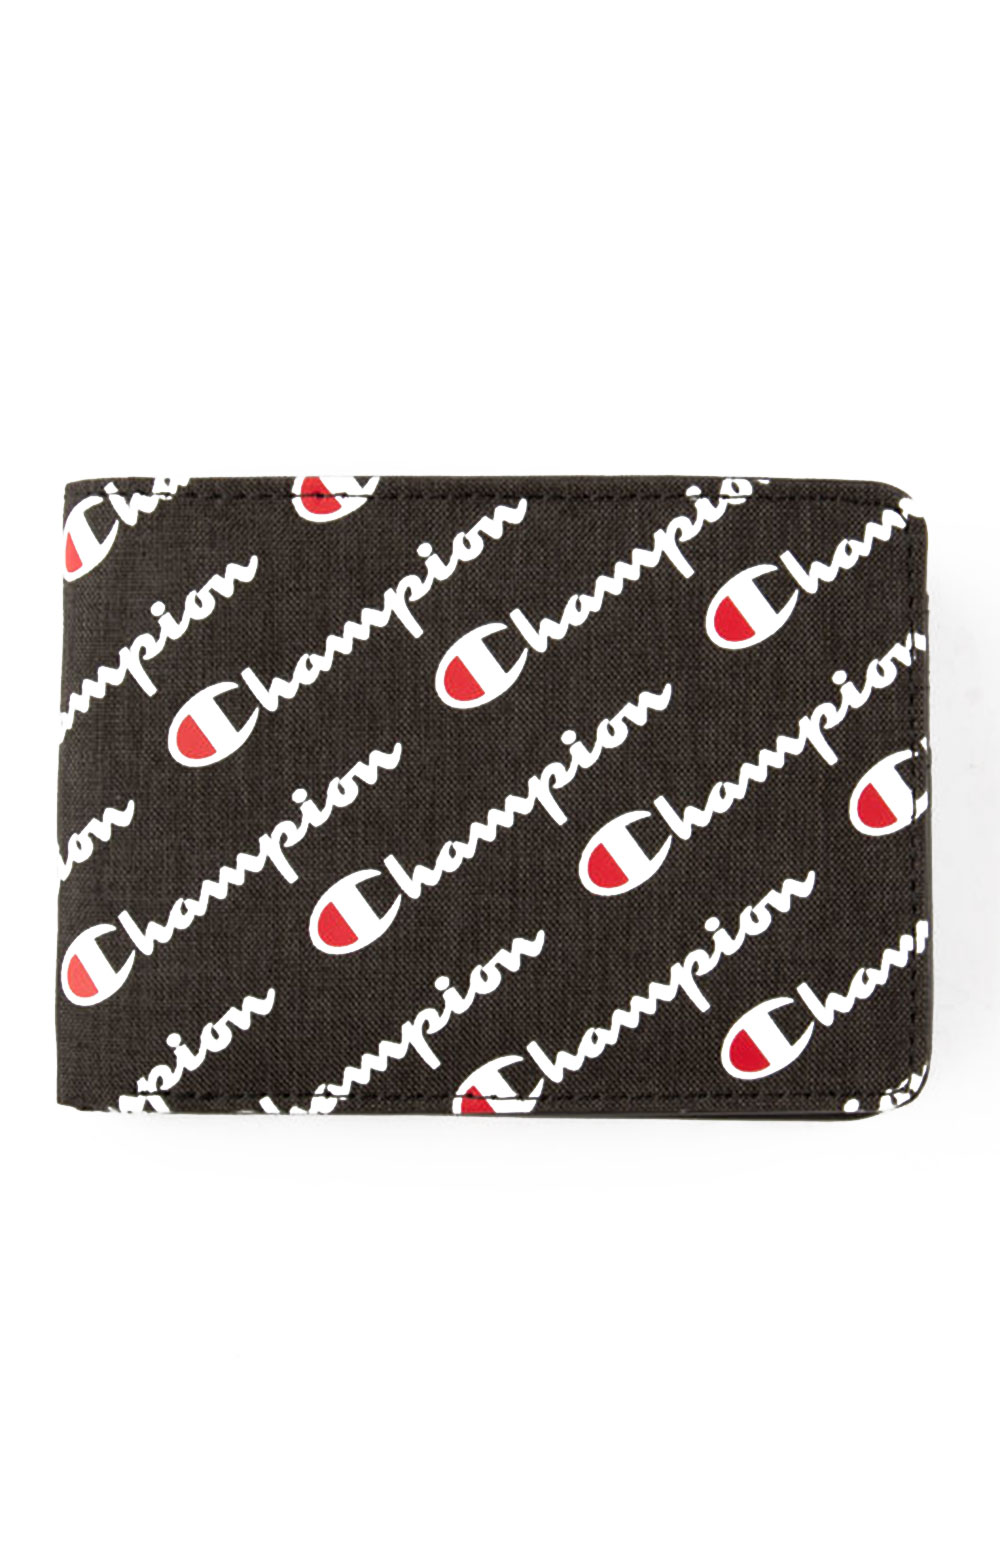 Champion Advocate Bi-Fold Wallet - Black